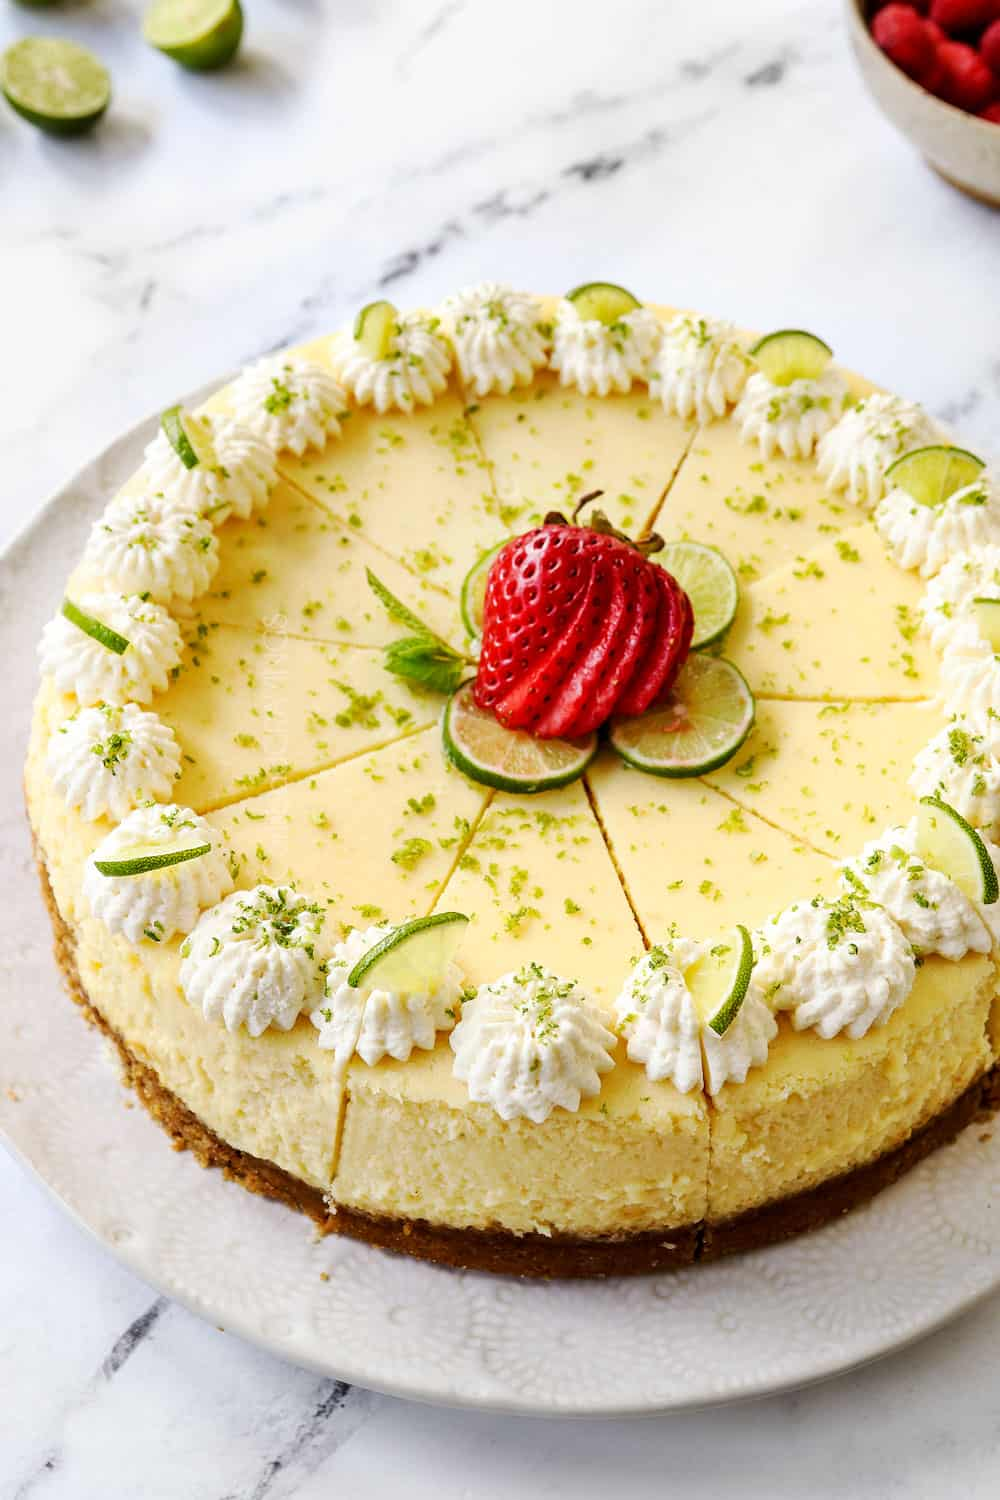 showing how to make key lime cheesecake by slicing into even pieces